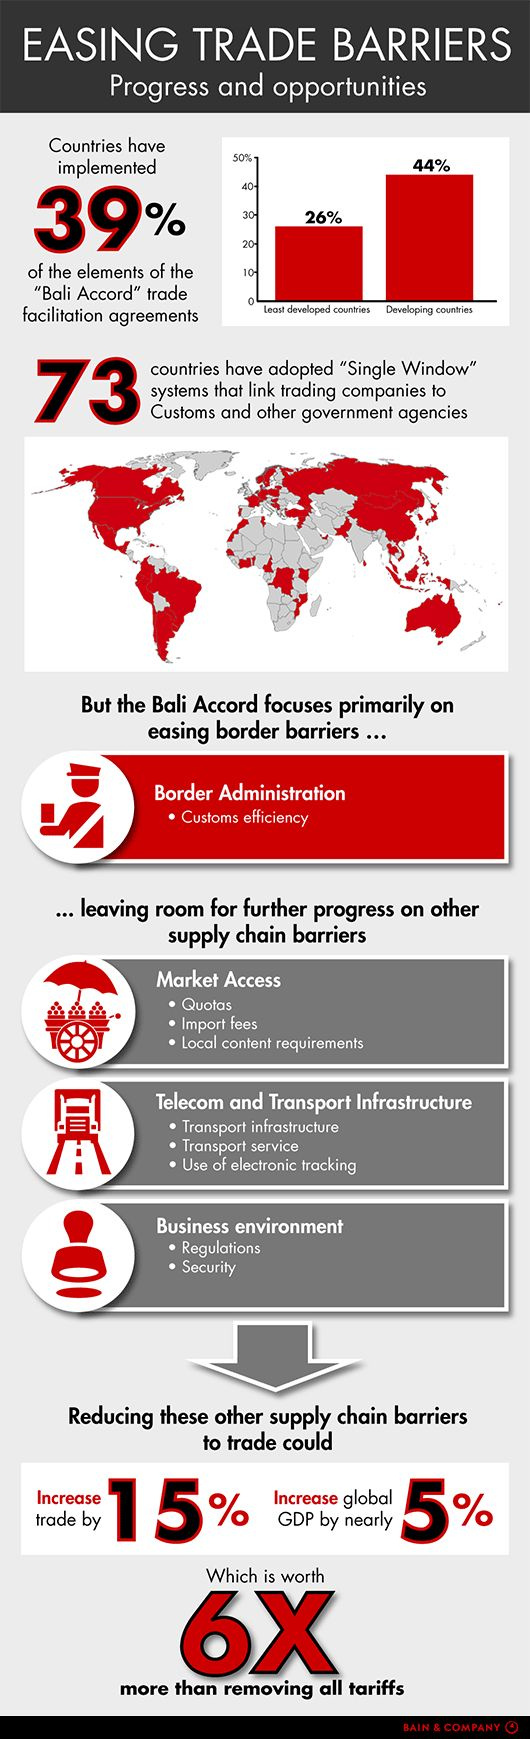 easing-trade-barriers-infographic-530